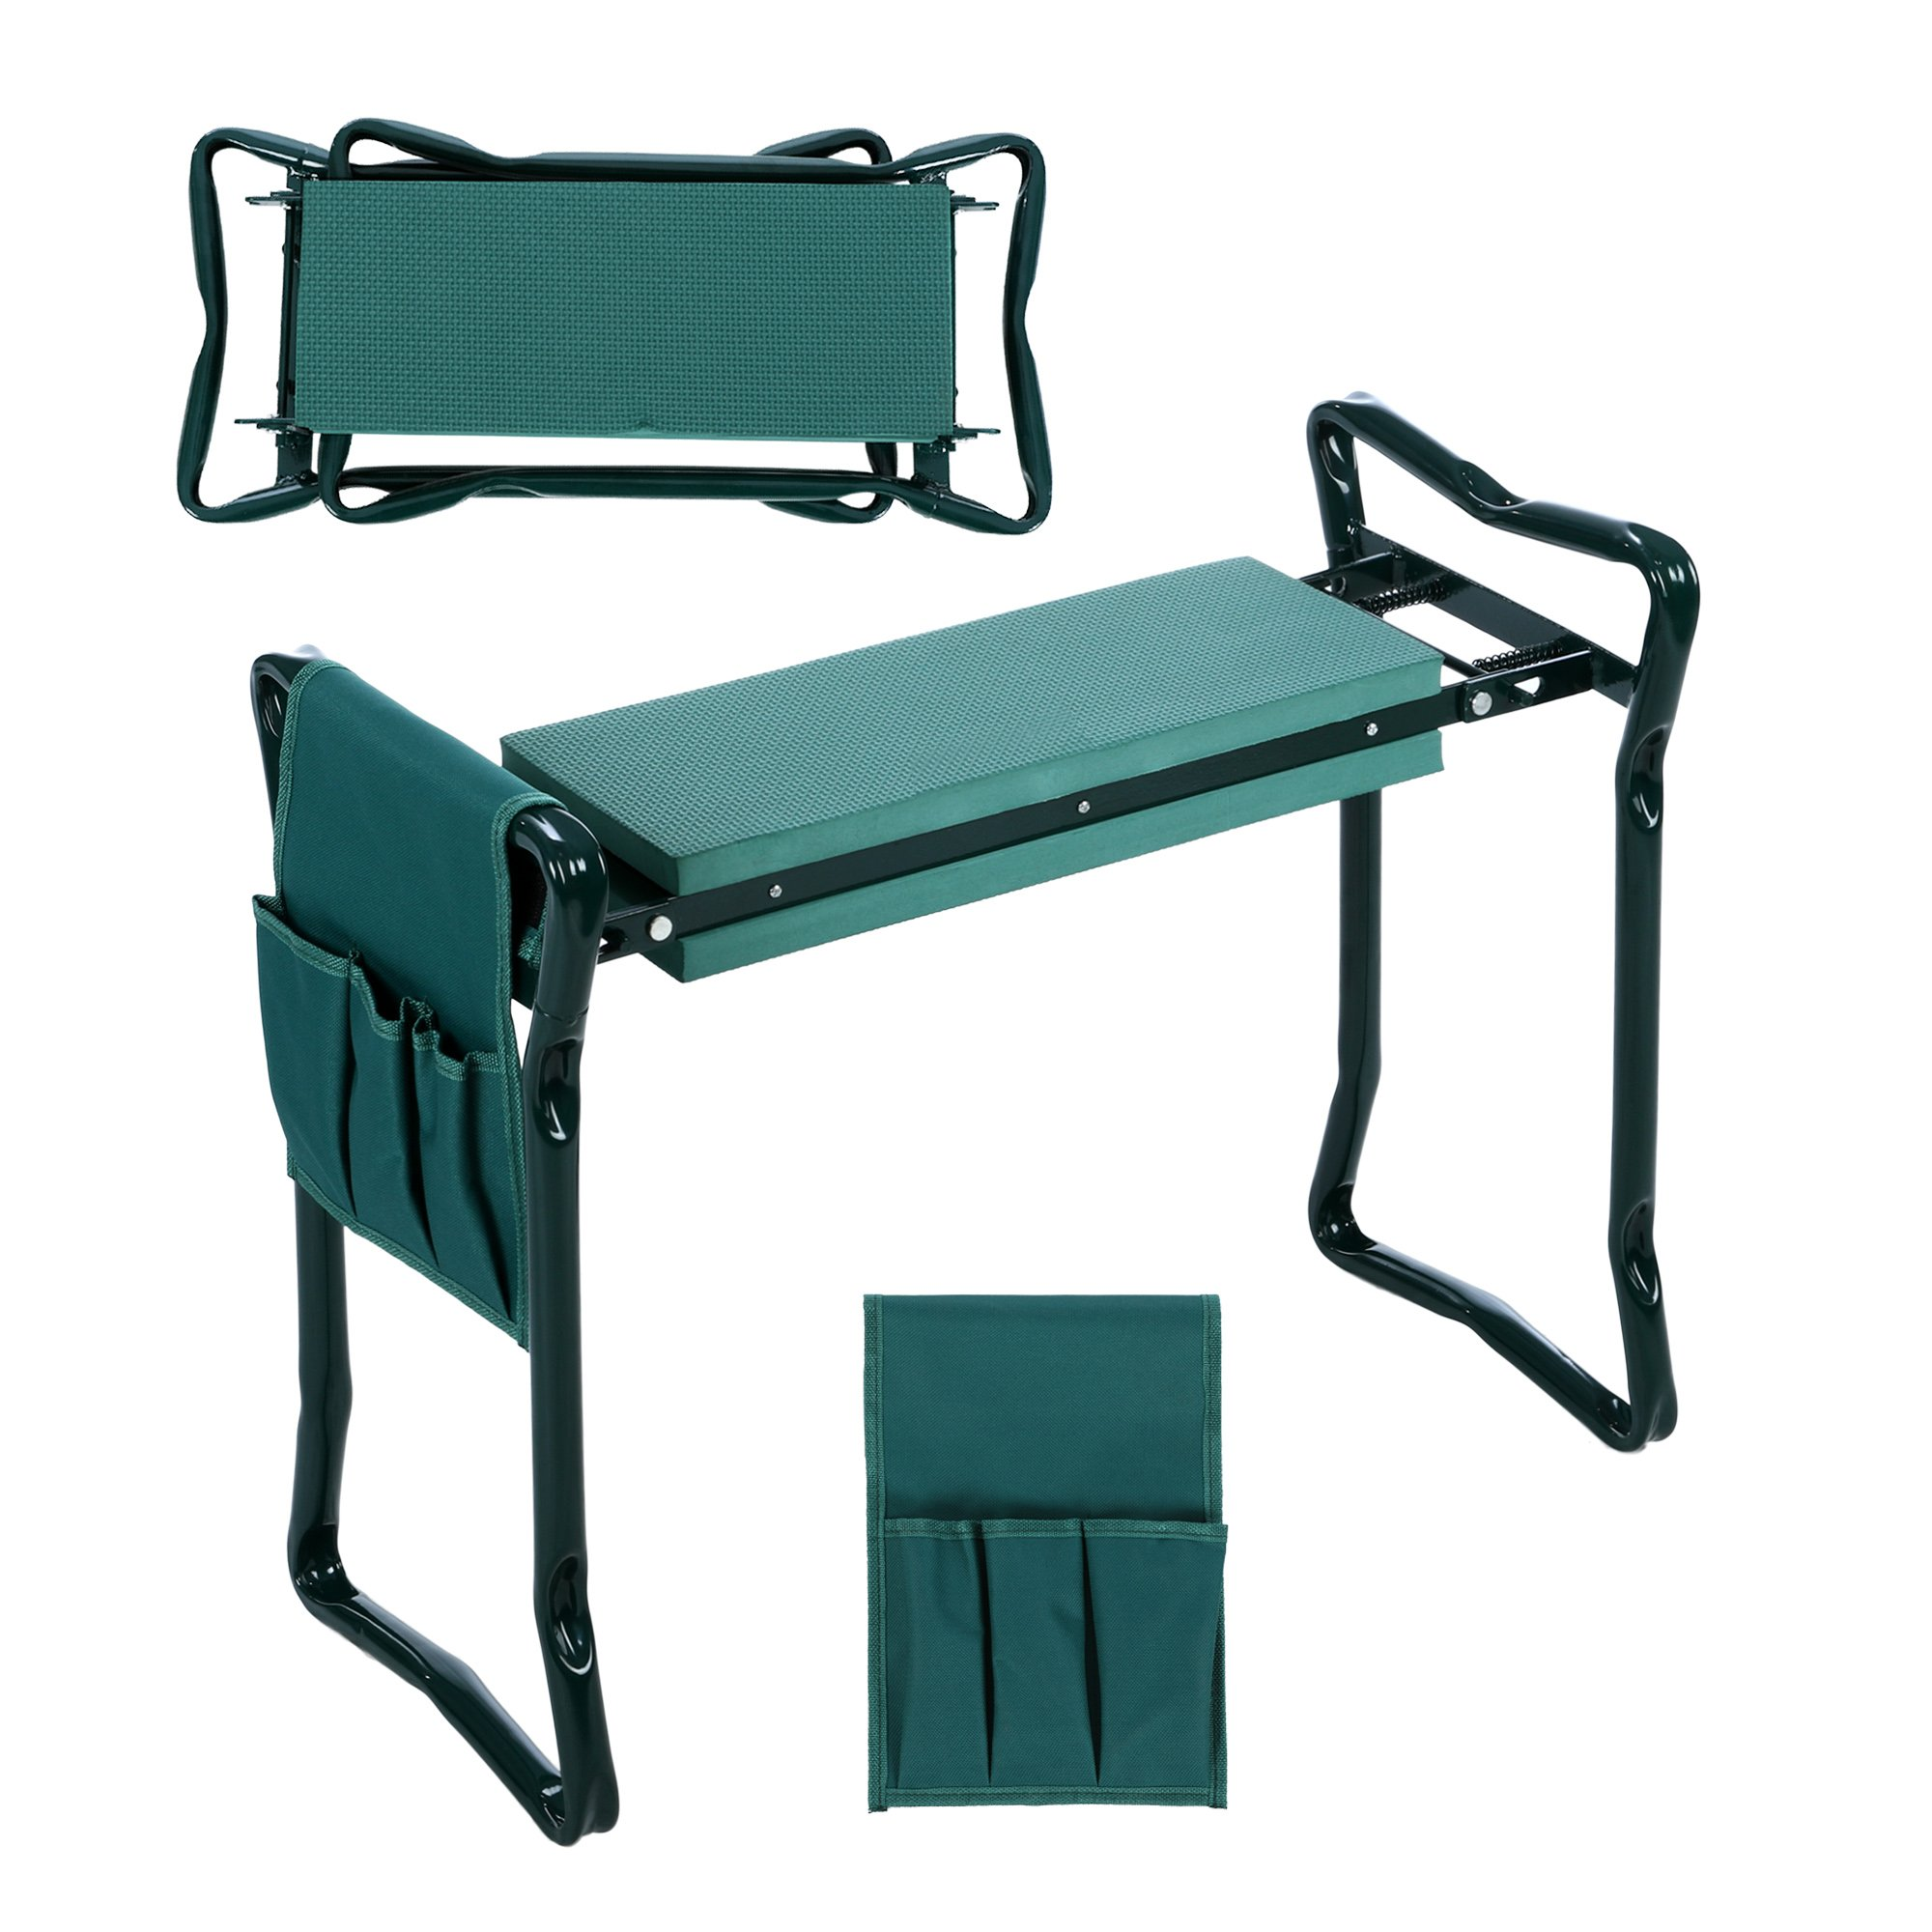 Meditool Folding Garden Kneeler and Seat with Bonus Tool Pouch, Portable Stool with EVA Soft Foam Padding (green pad) by Meditool